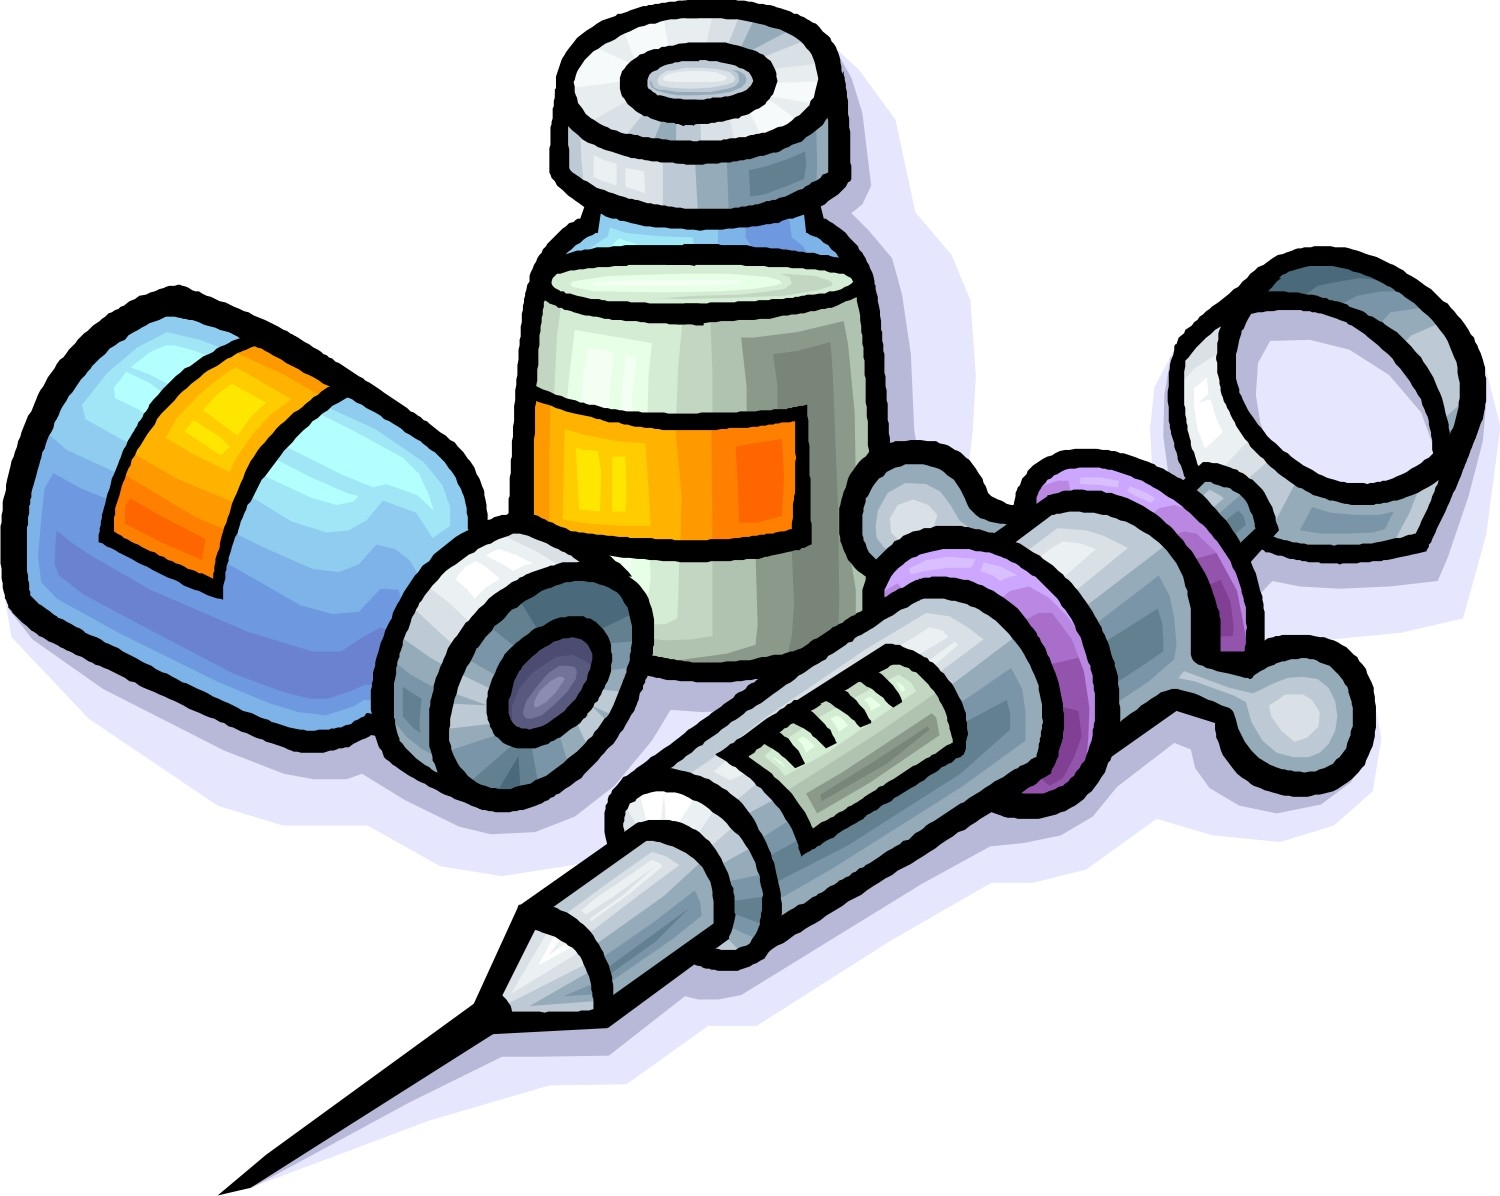 Medication clipart. New collection digital coloring